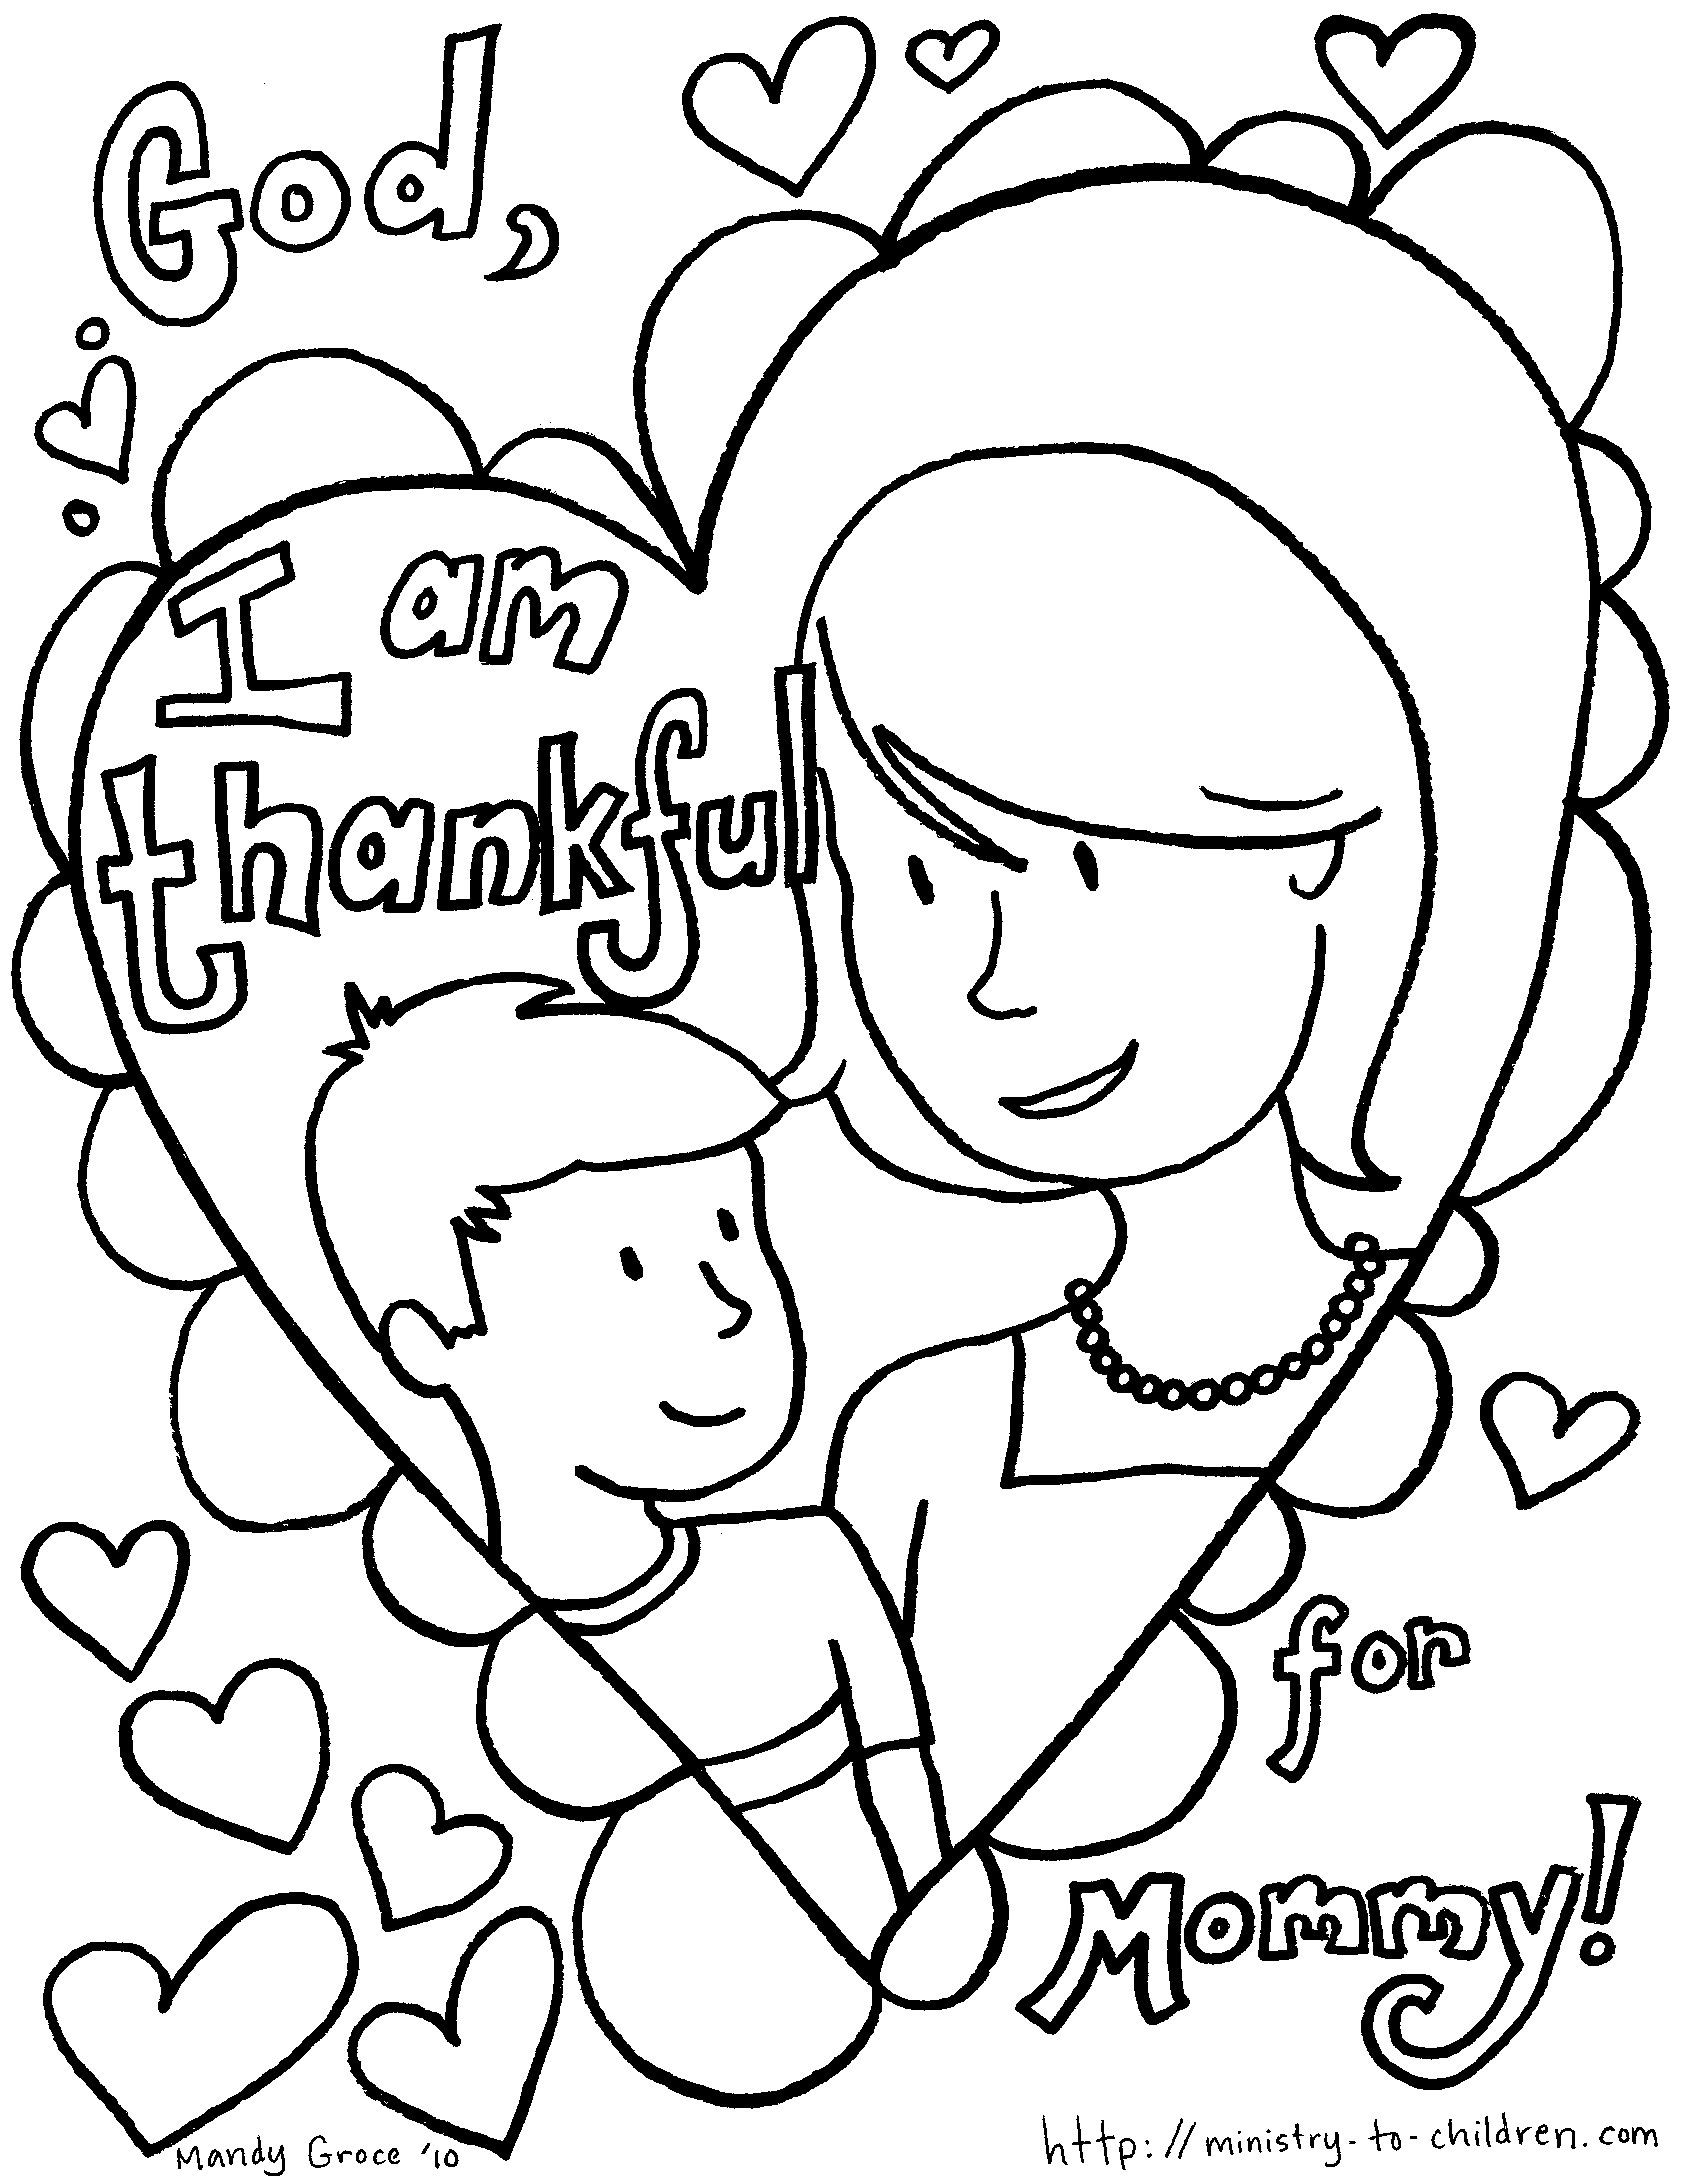 Free coloring pages christian - Mother S Day Coloring Pages Mother S Day Coloring Sheet Download Event Wallpaper May 11th